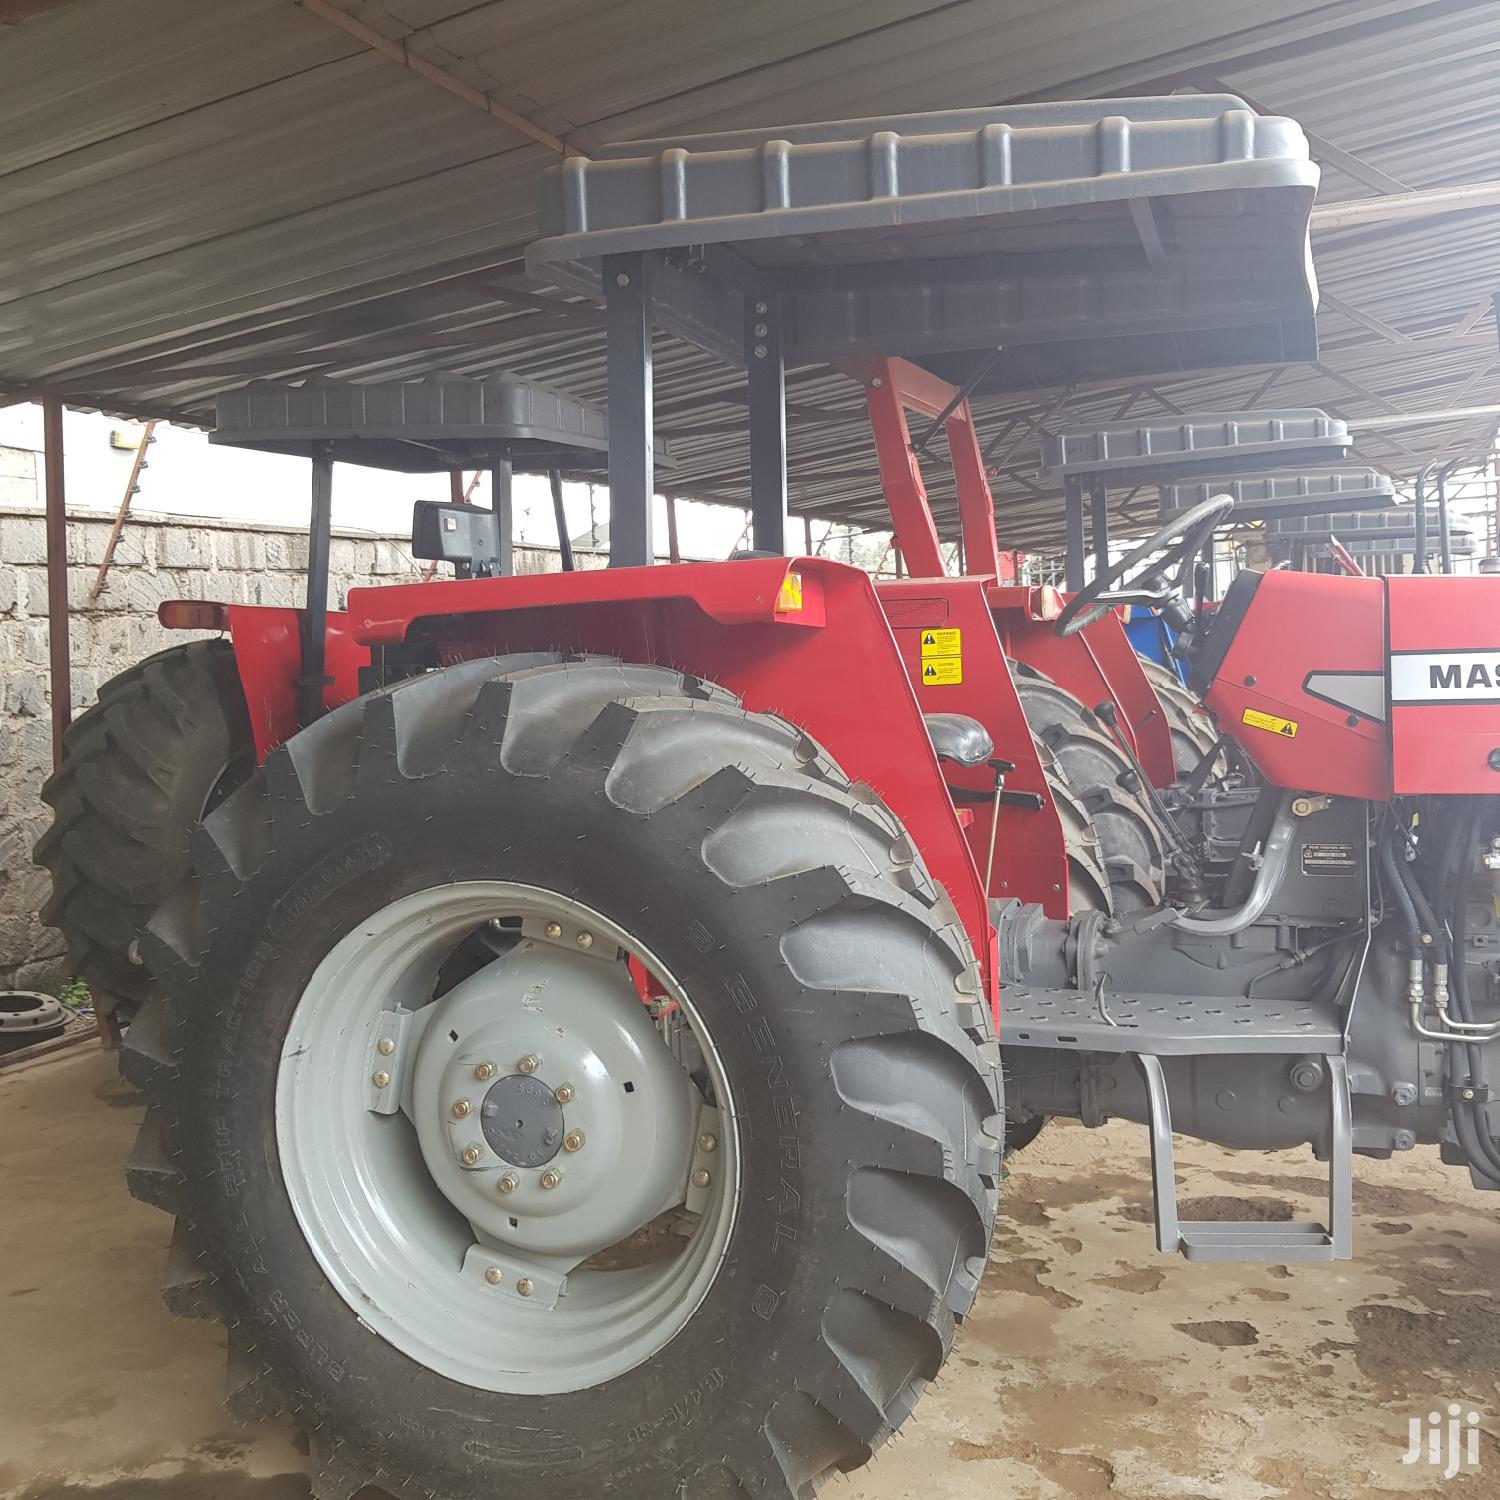 Mf 385 4wd | Heavy Equipment for sale in Karen, Nairobi, Kenya